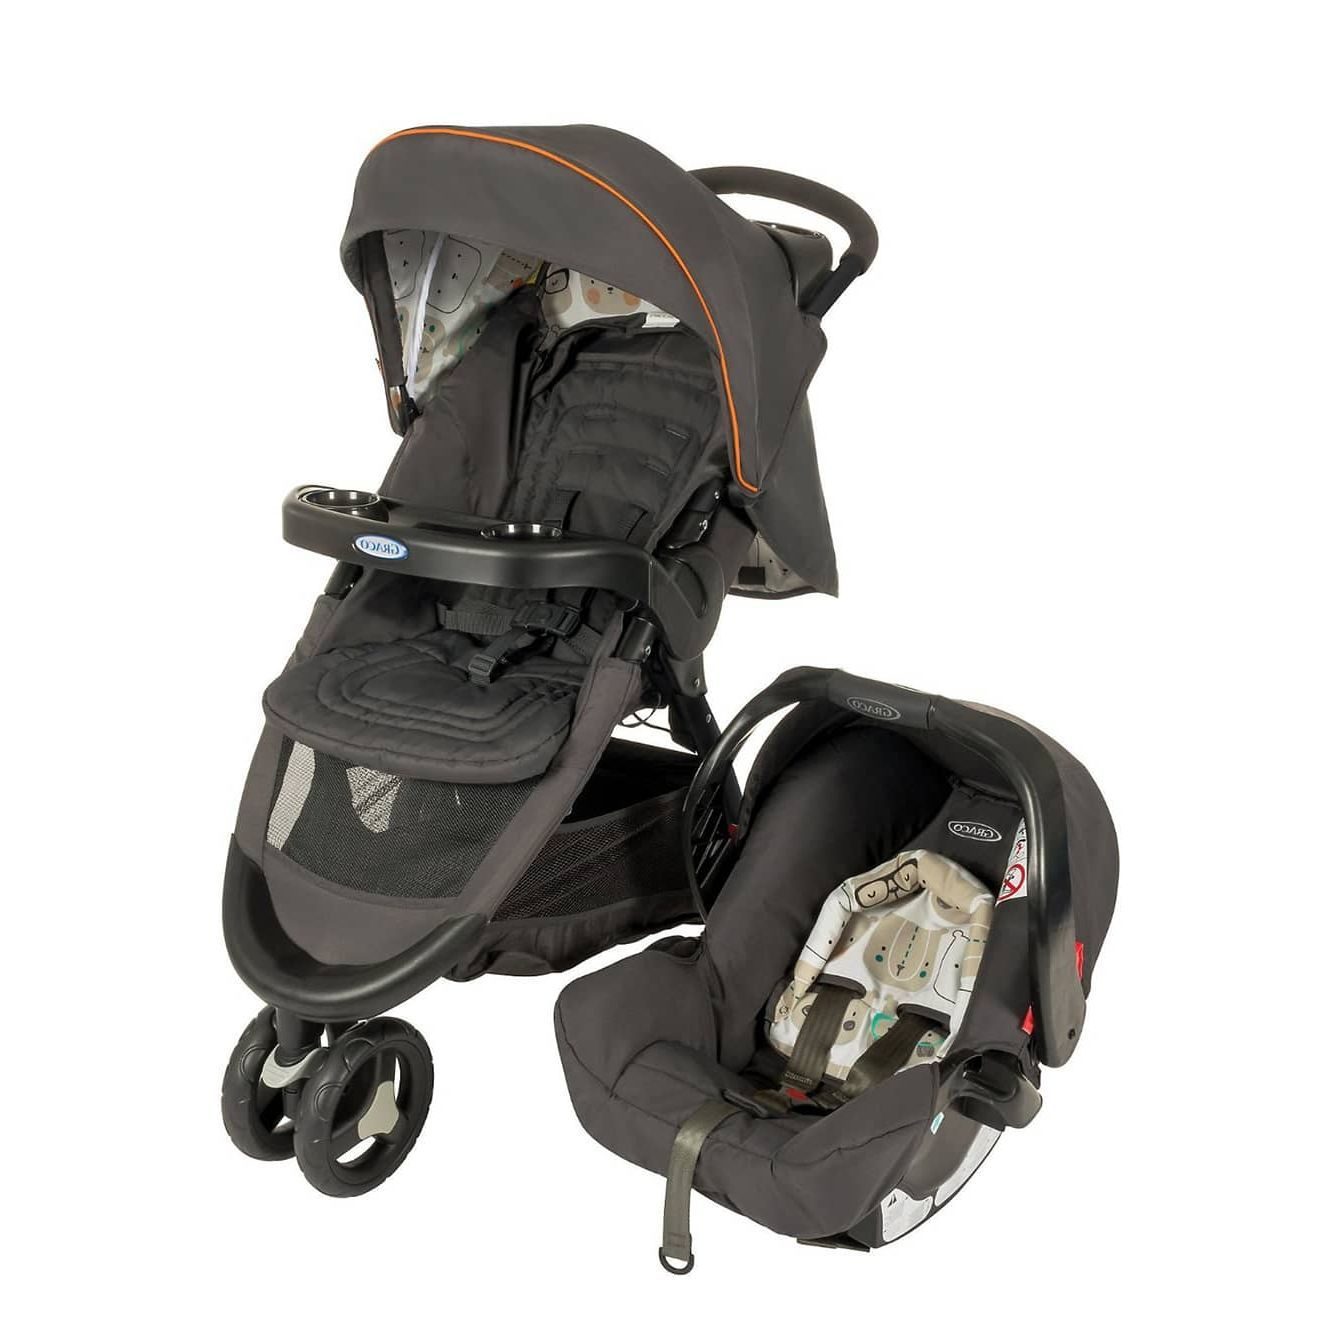 Graco Grey Sport J B Bowtiebear Stroller/Carseat Travel